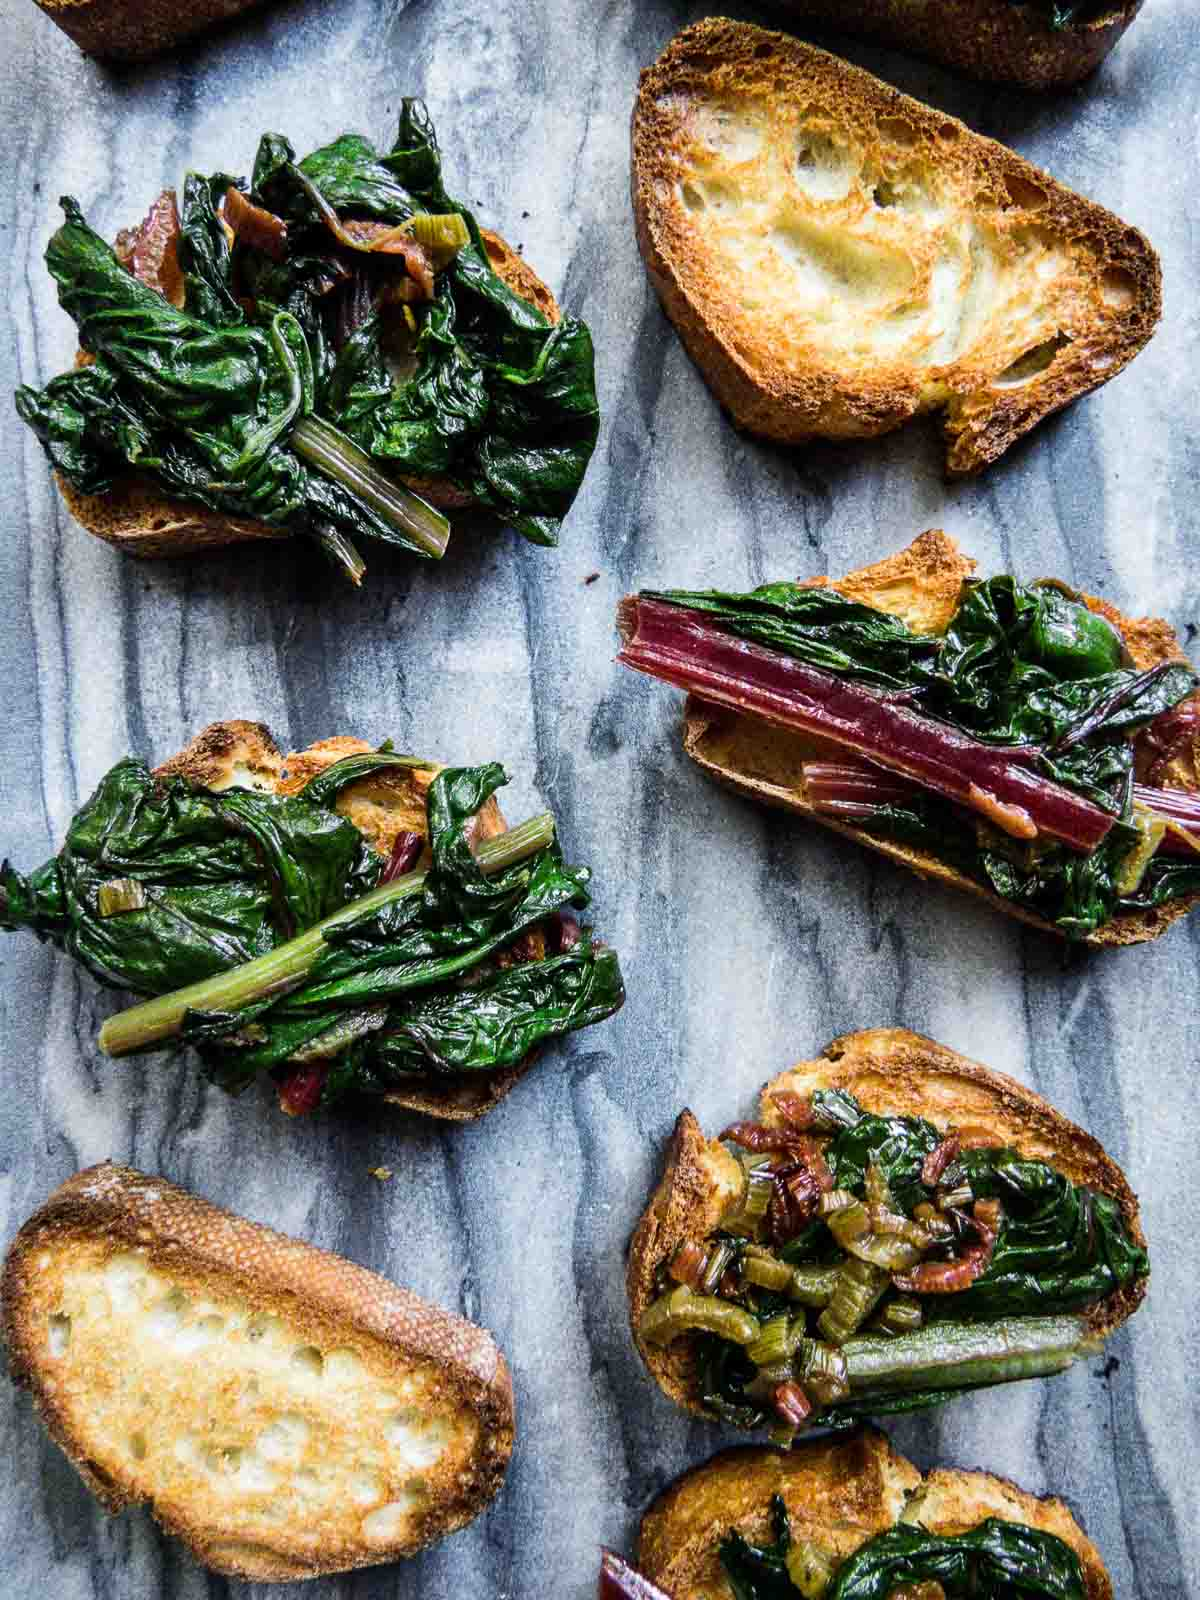 Garlicky Swiss Chard Bruschetta The Beader Chef